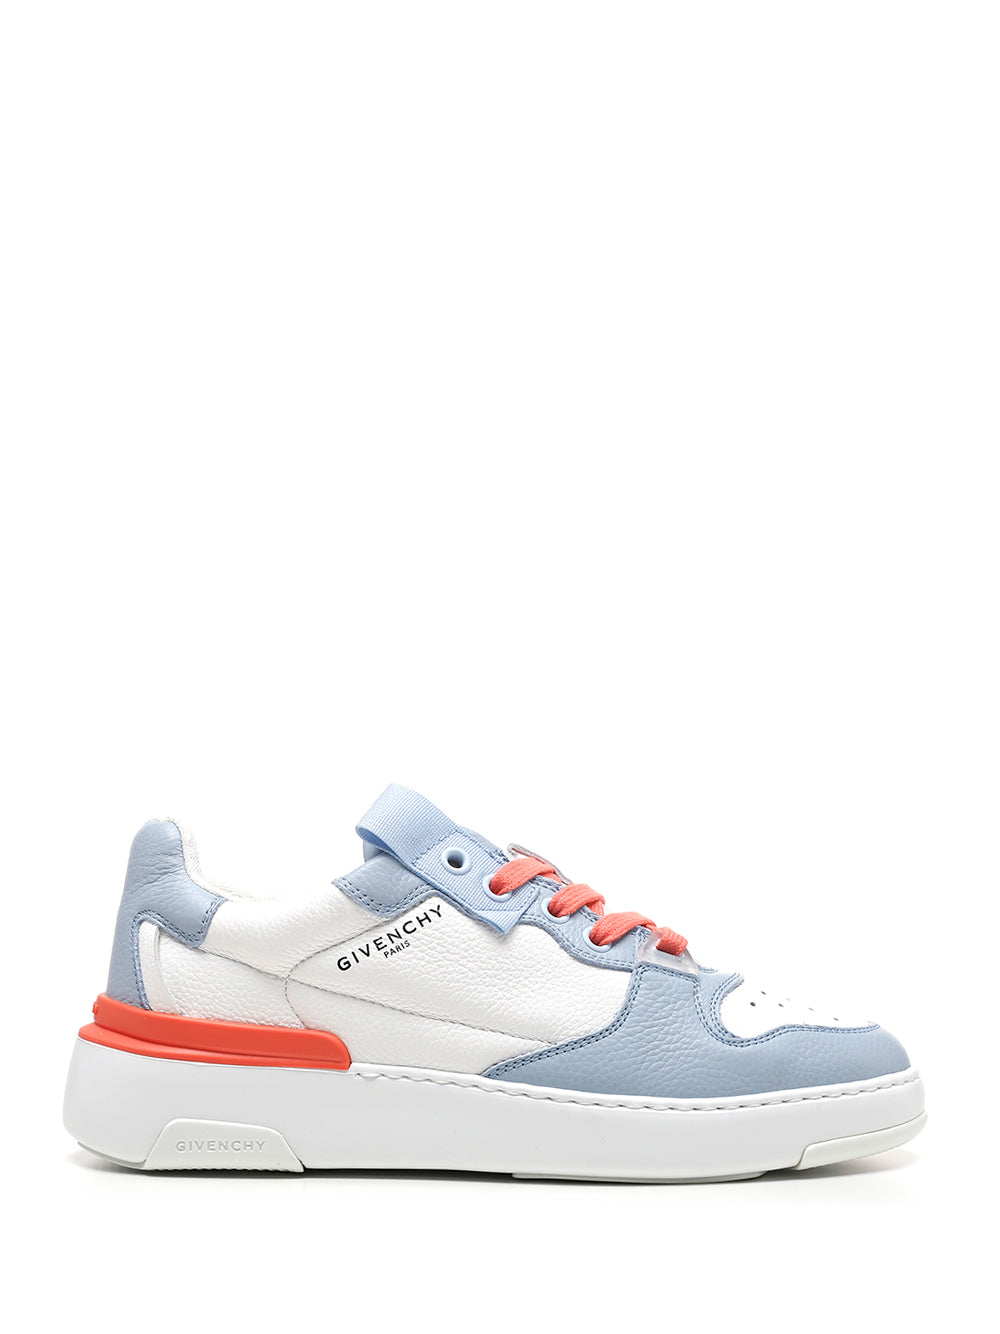 Givenchy Leathers GIVENCHY WING LOW THREE TONE SNEAKERS